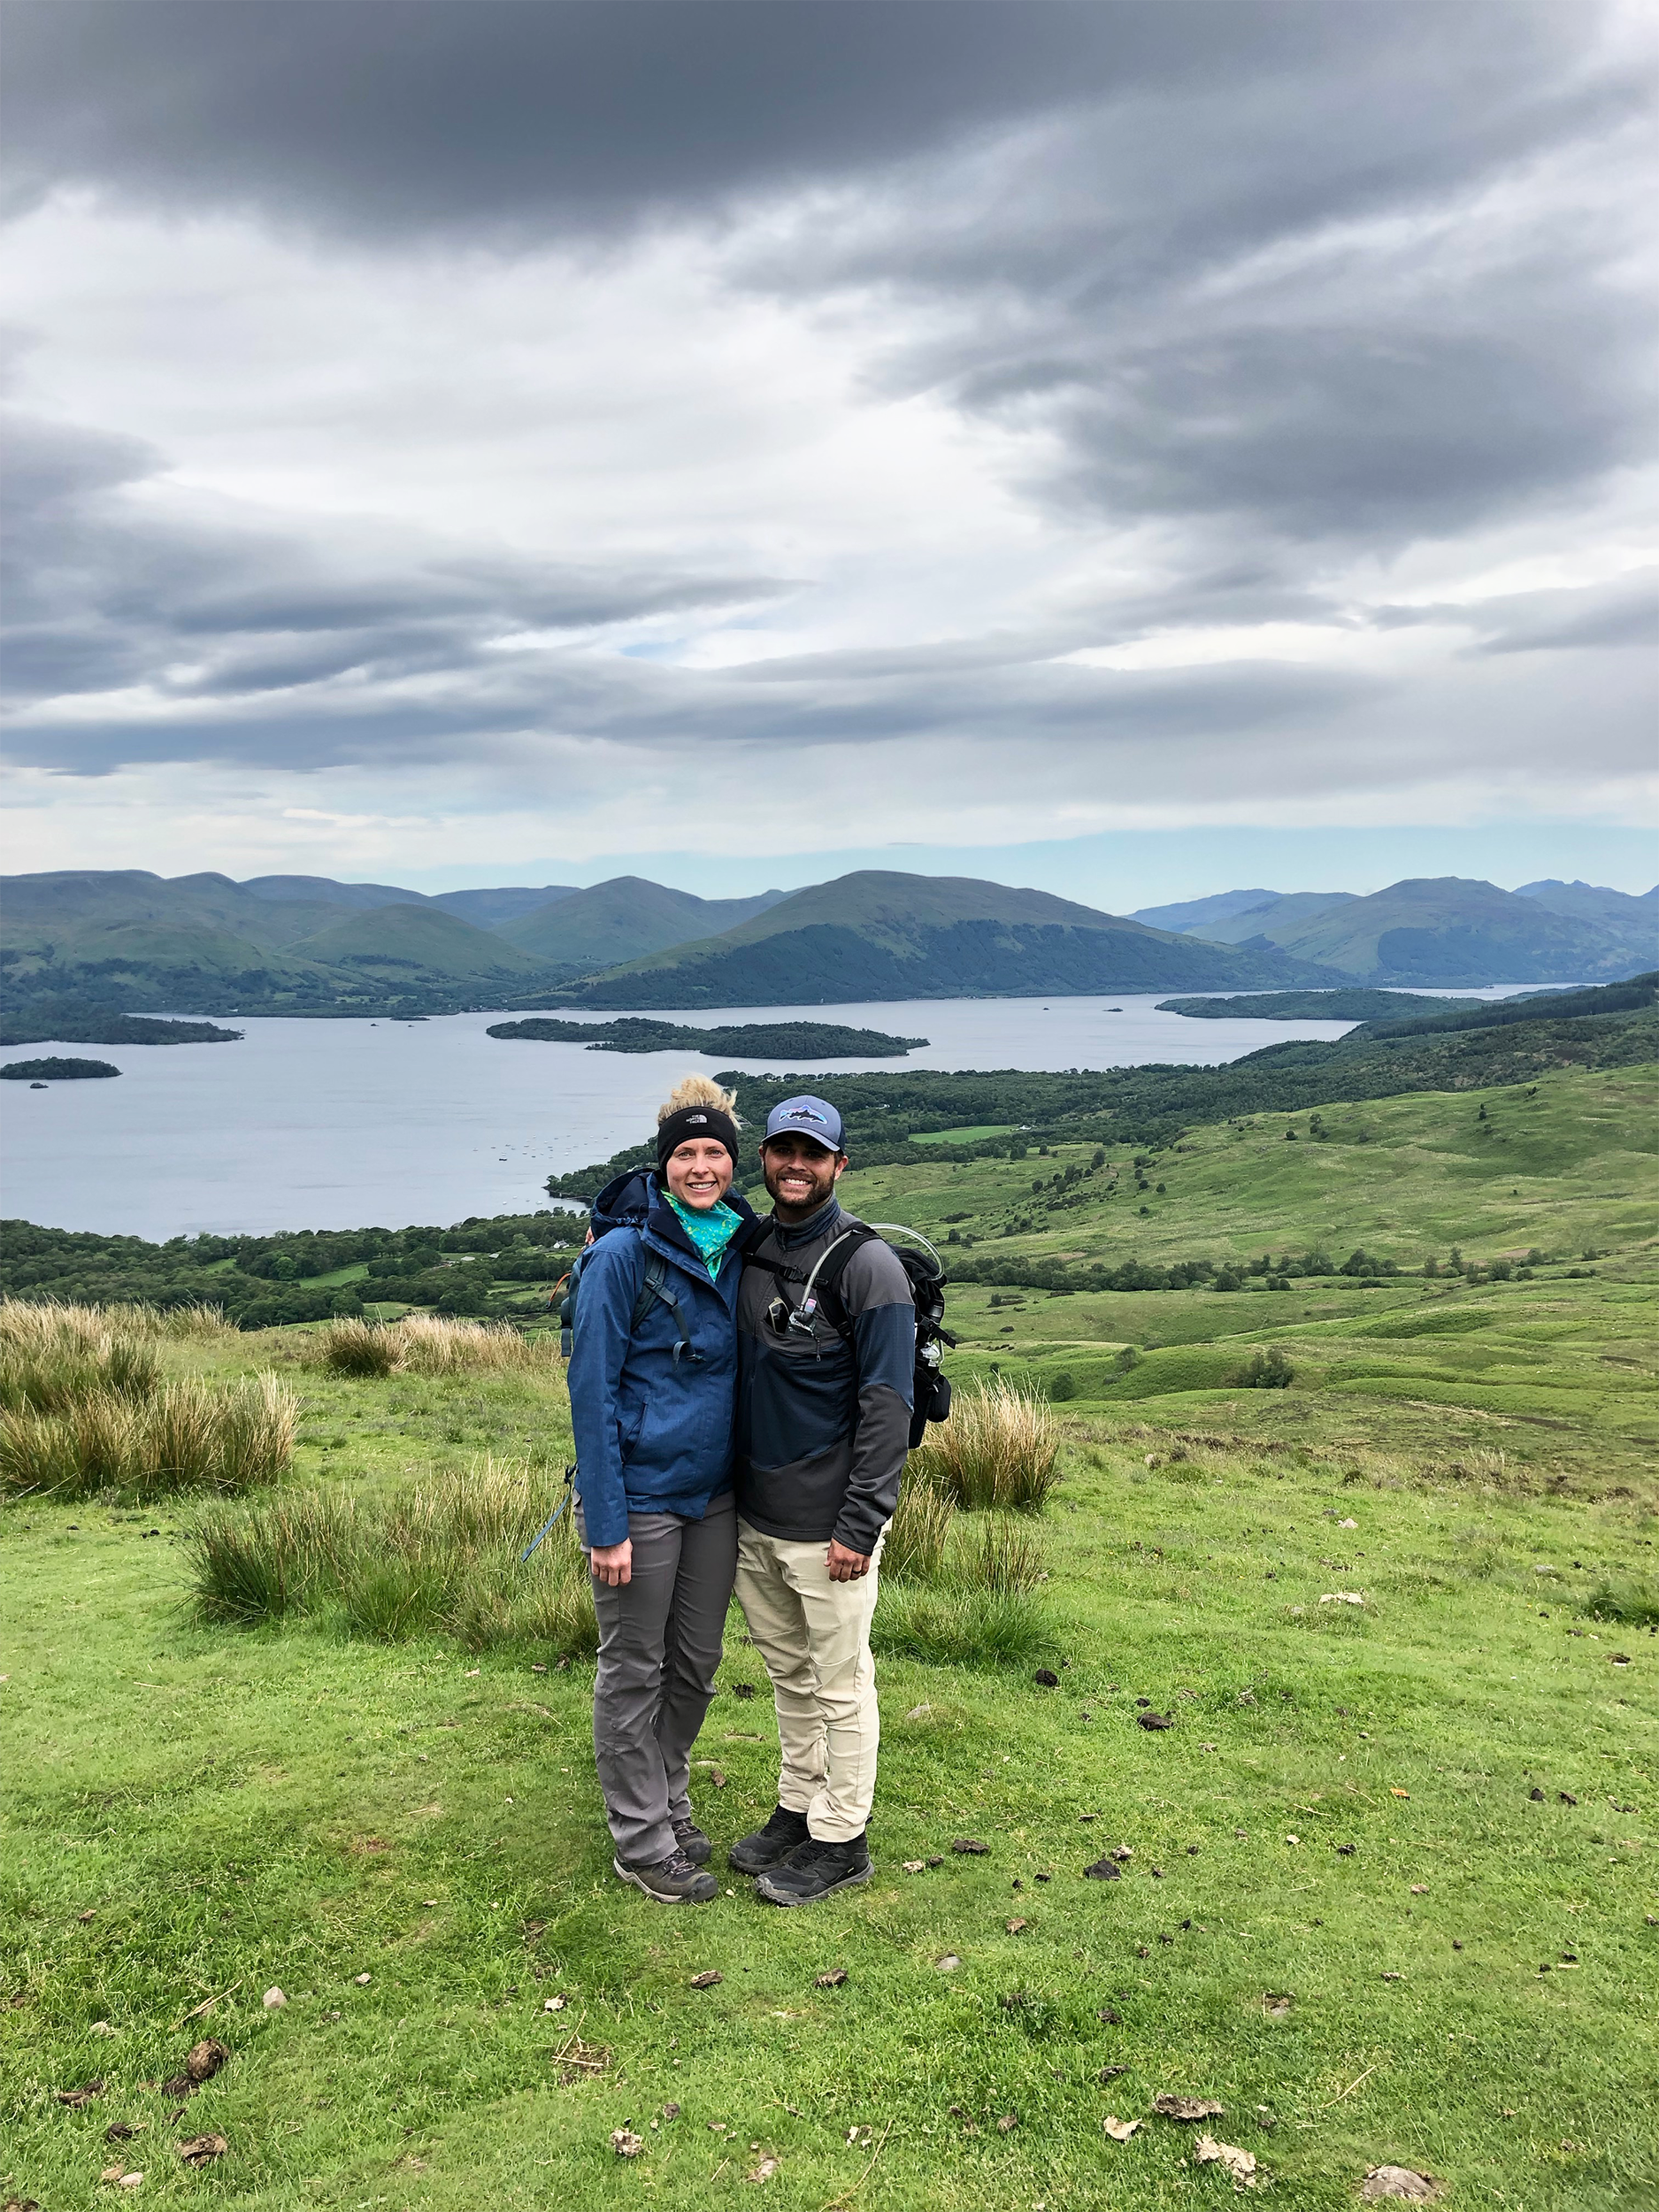 On this day we had one of our biggest elevation gains. We climbed to the top of Conic Hill and the views of Loch Lomond were stunning!